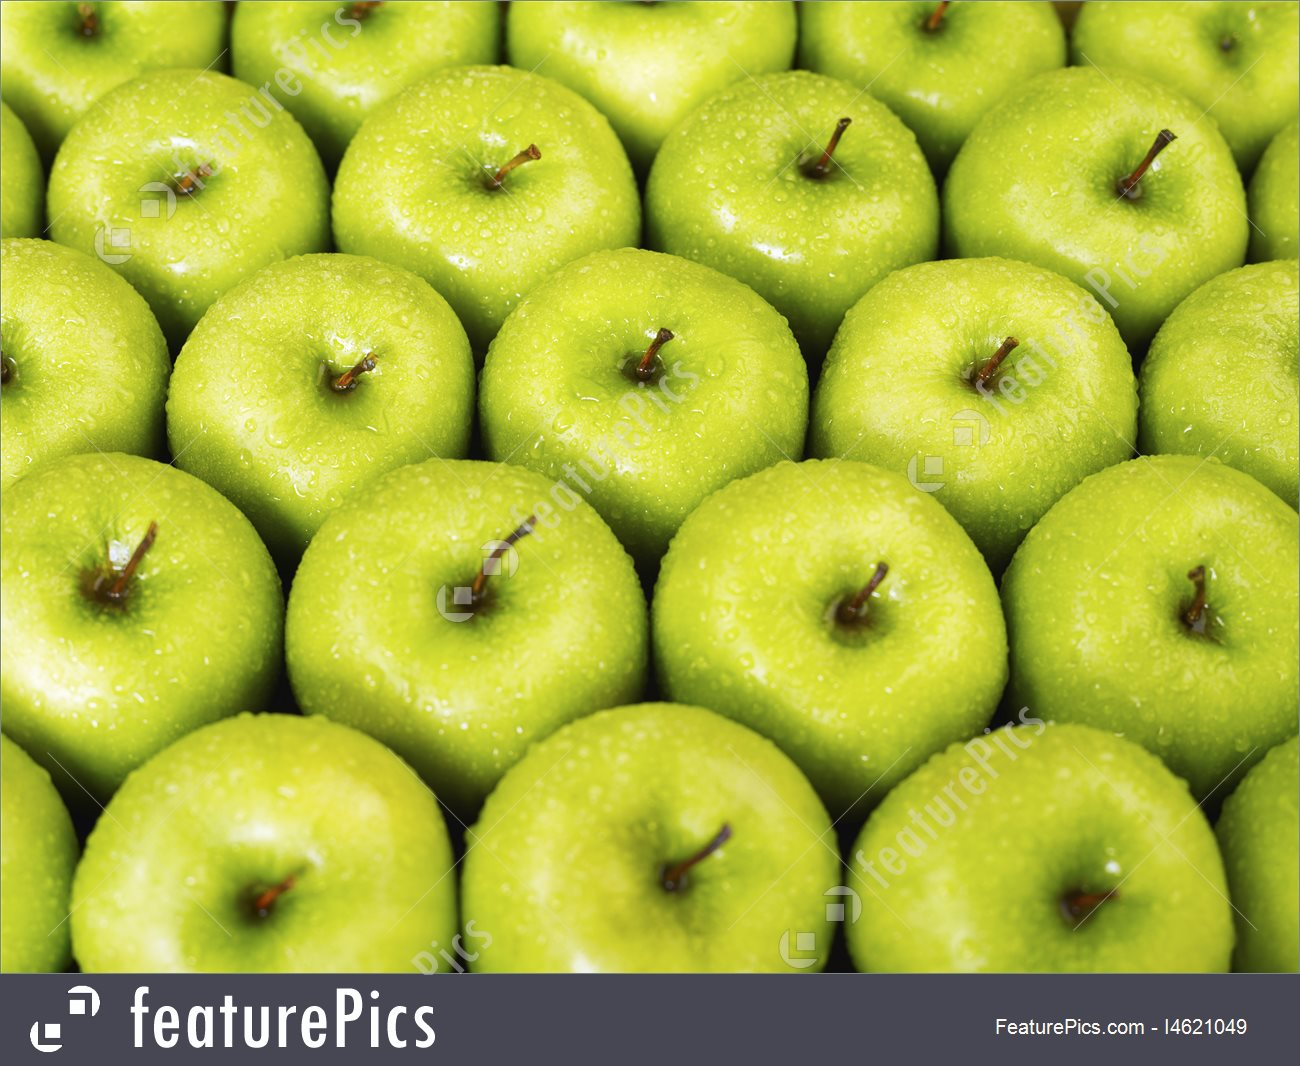 Large Group Of Green Apples In A Row - Apple - HD Wallpaper